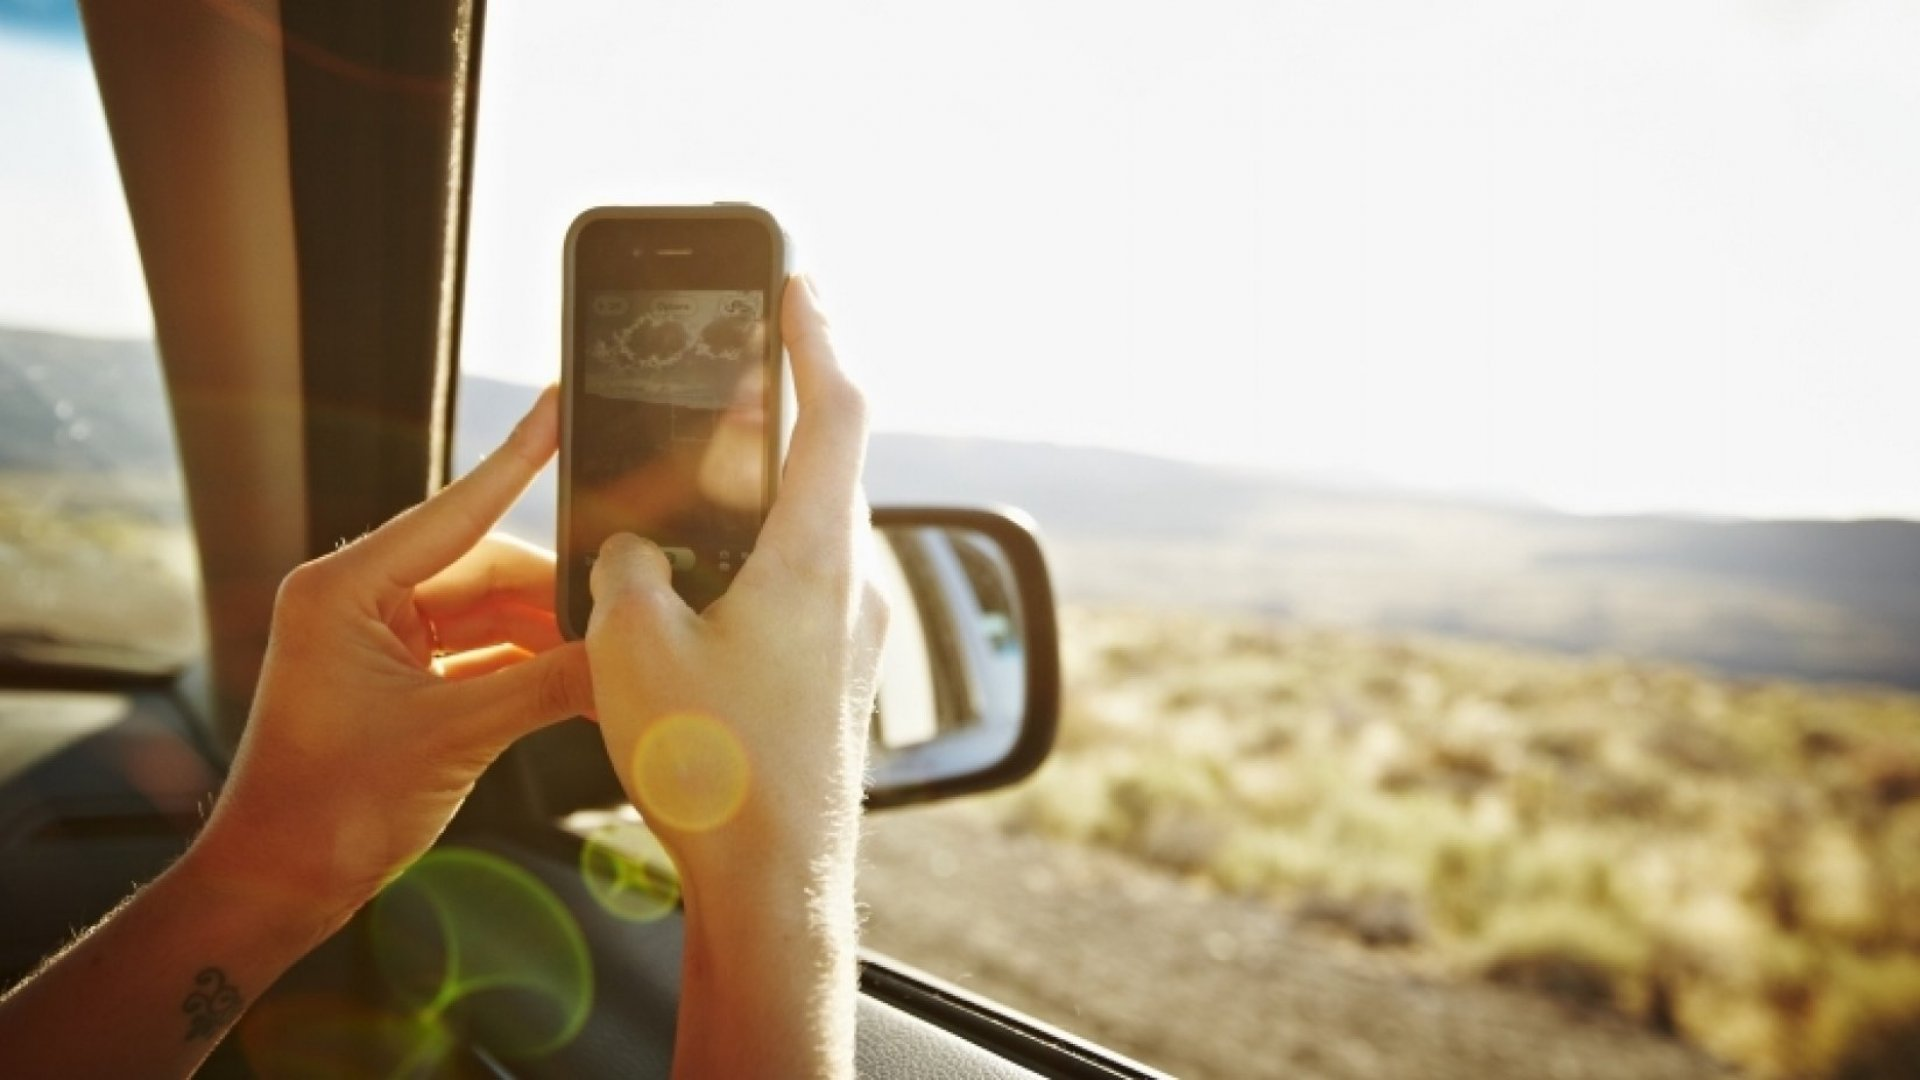 Facebook and Instagram Among Top Choices for Travel Marketing